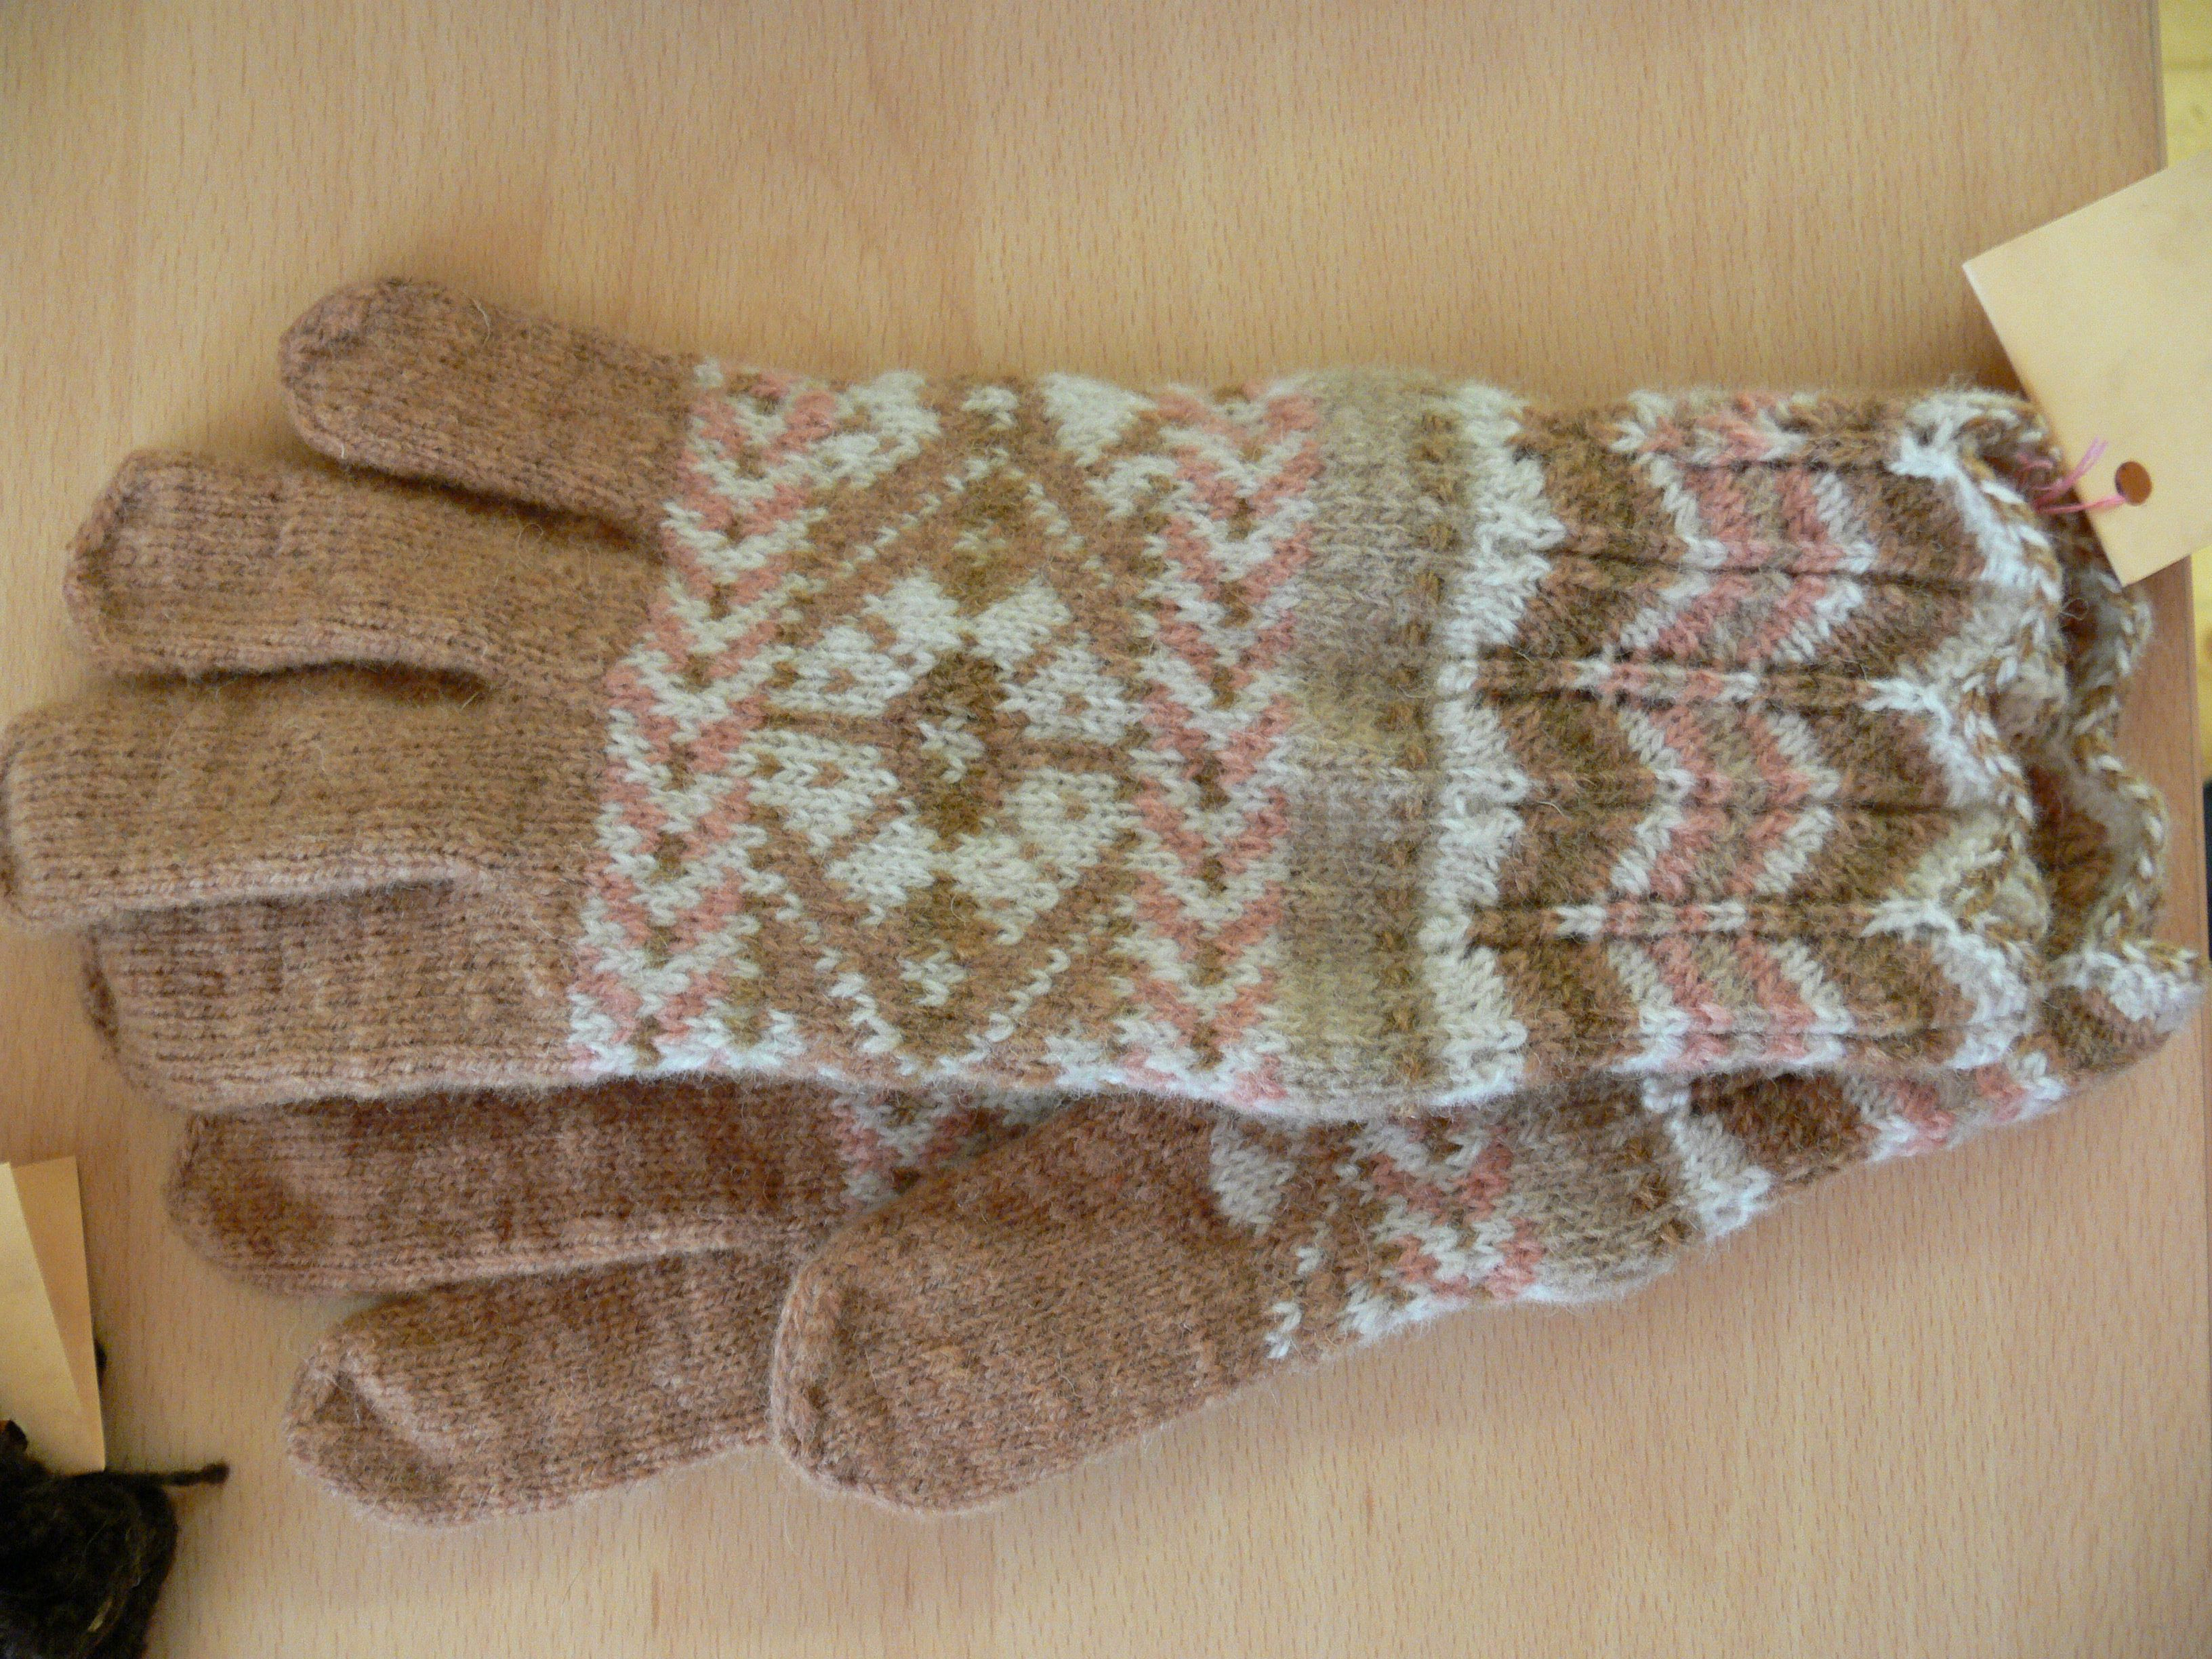 Knitted in Türi, Central Estonia; yarn dyed with mushrooms | Knitted ...